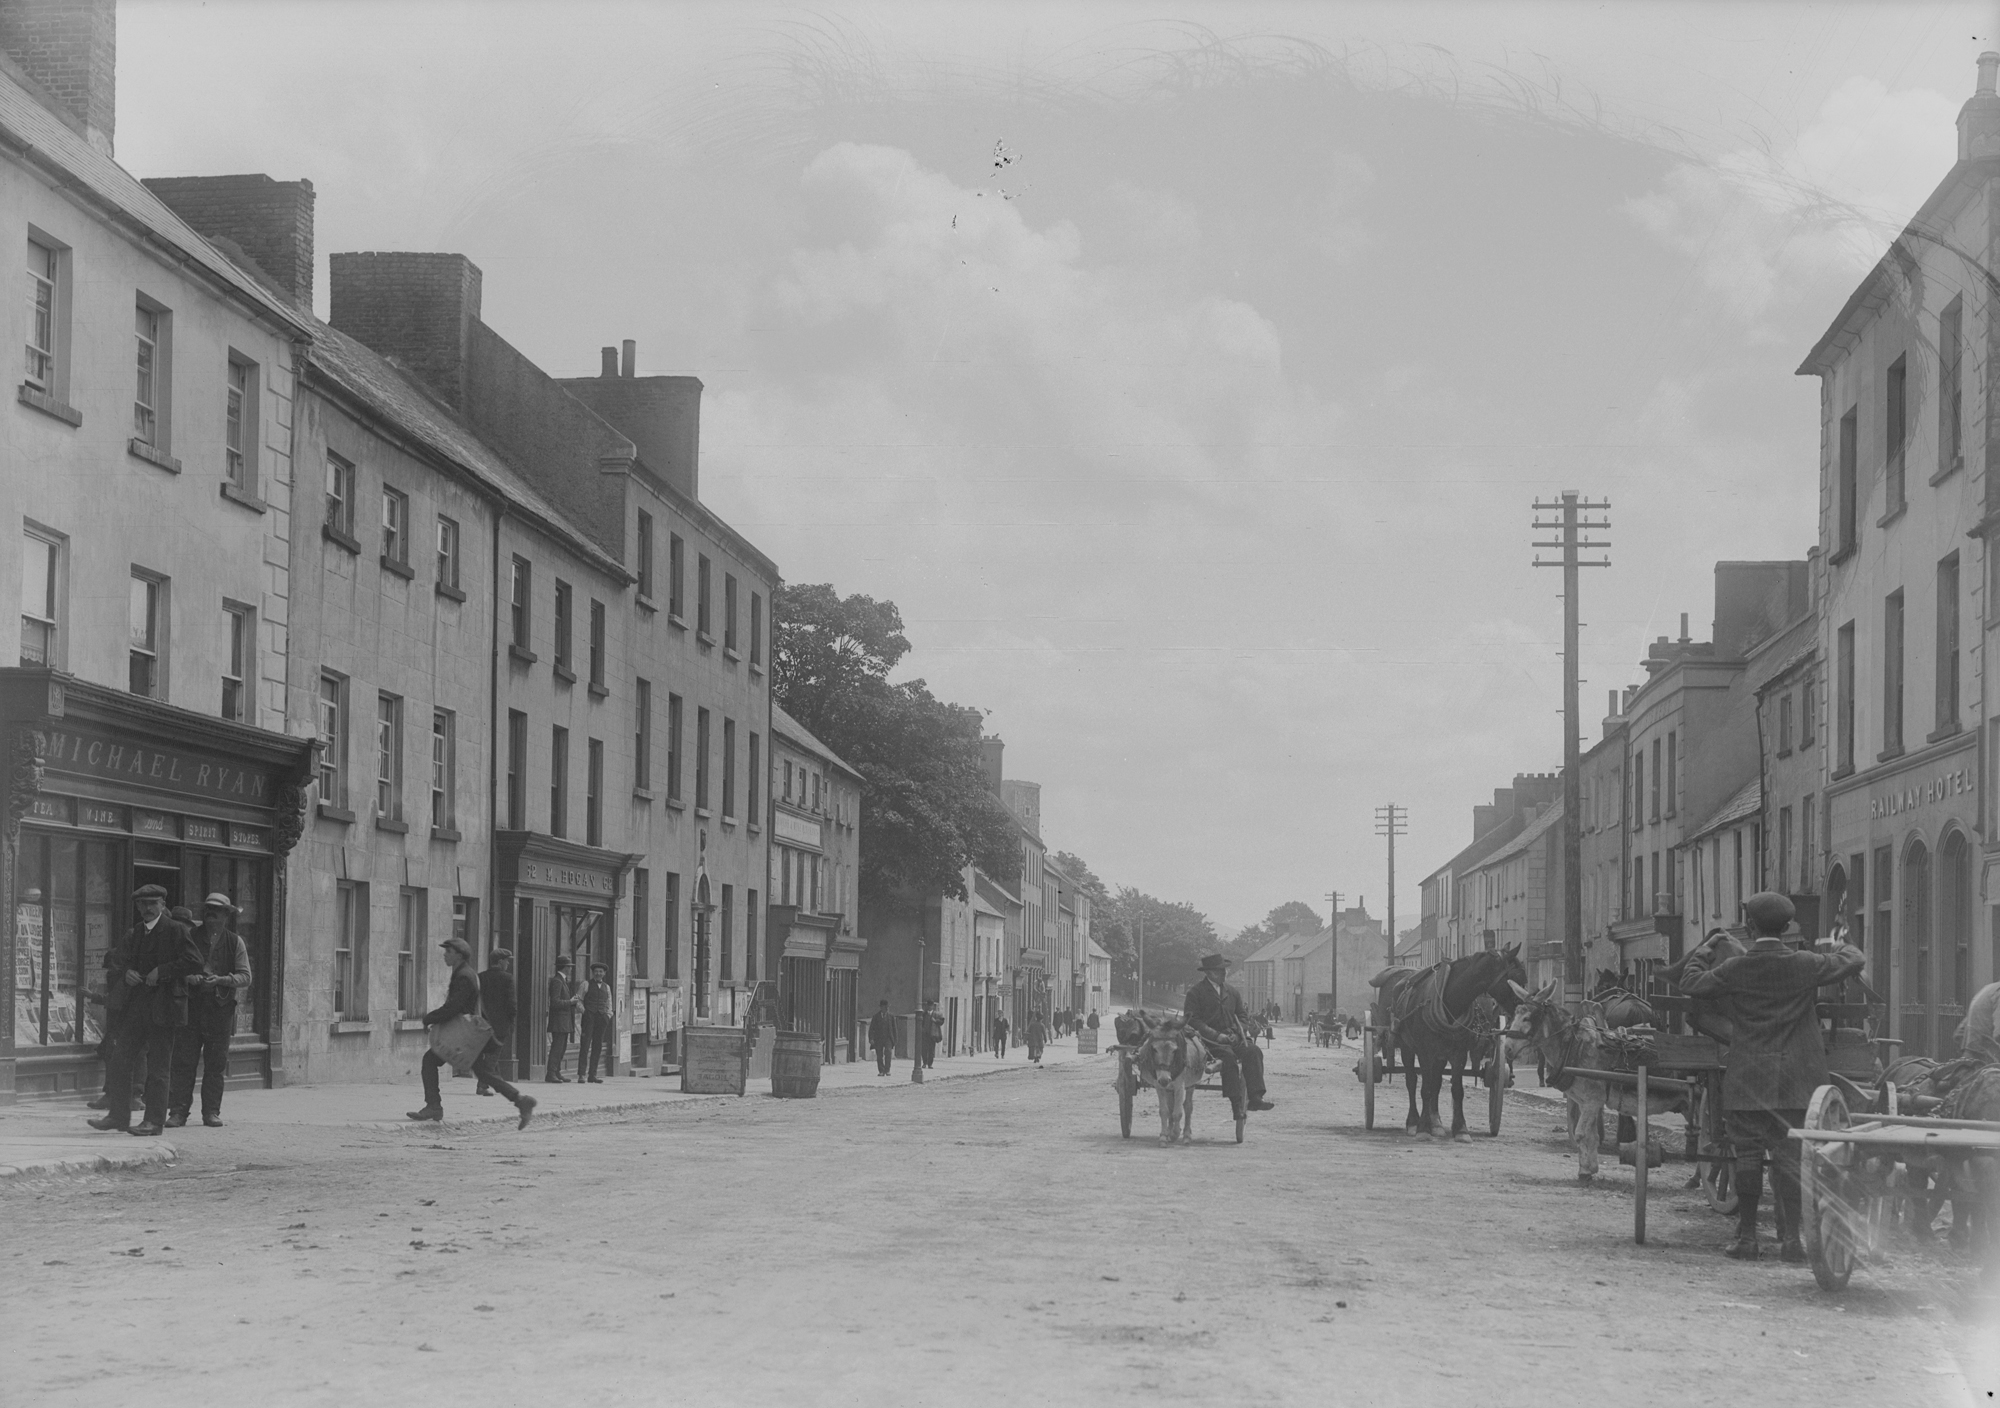 Parish Registers for Nenagh, Co. Tipperary